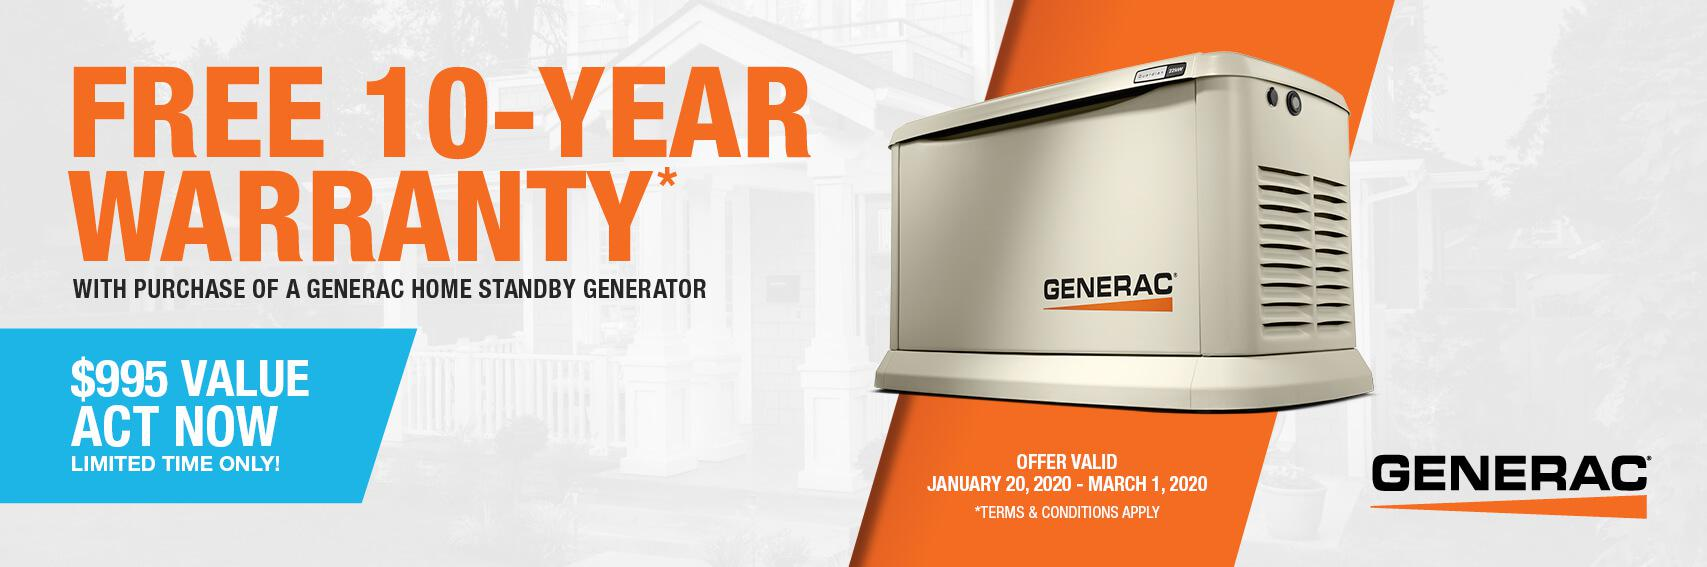 Homestandby Generator Deal | Warranty Offer | Generac Dealer | Summerland Key, FL